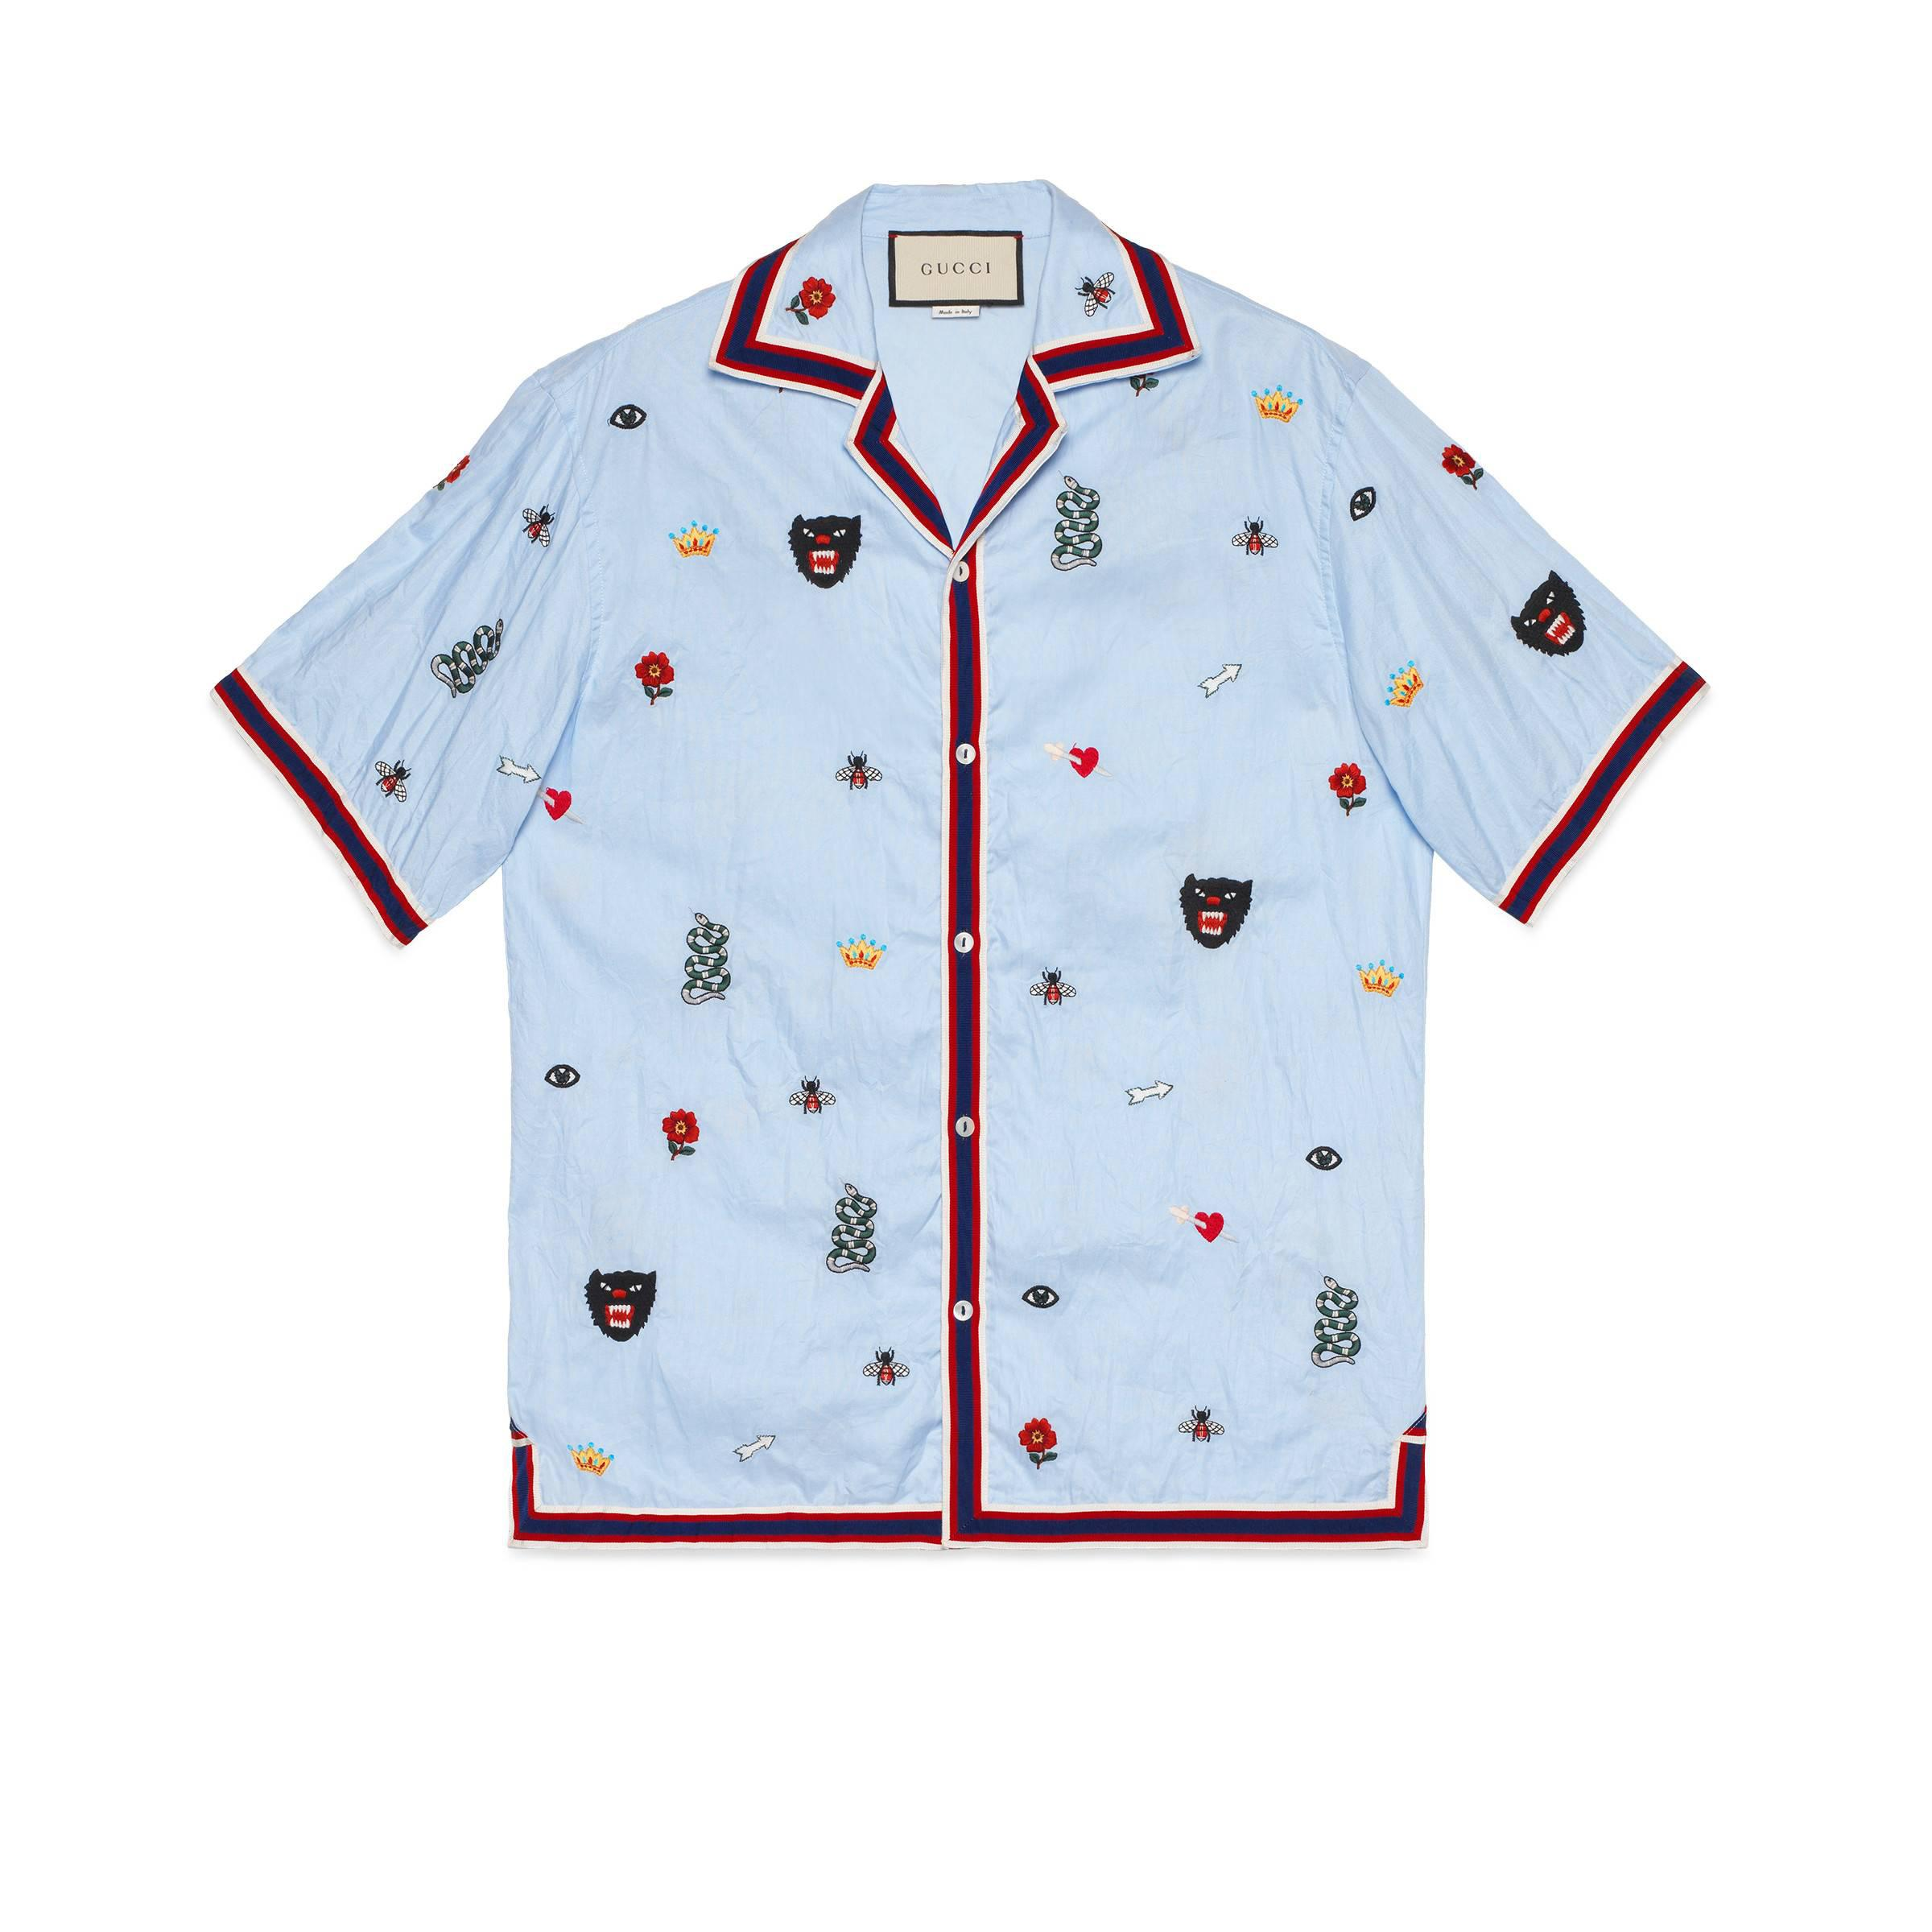 f58356526b2 Gucci - Blue Embroidered Cotton Bowling Shirt for Men - Lyst. View  fullscreen